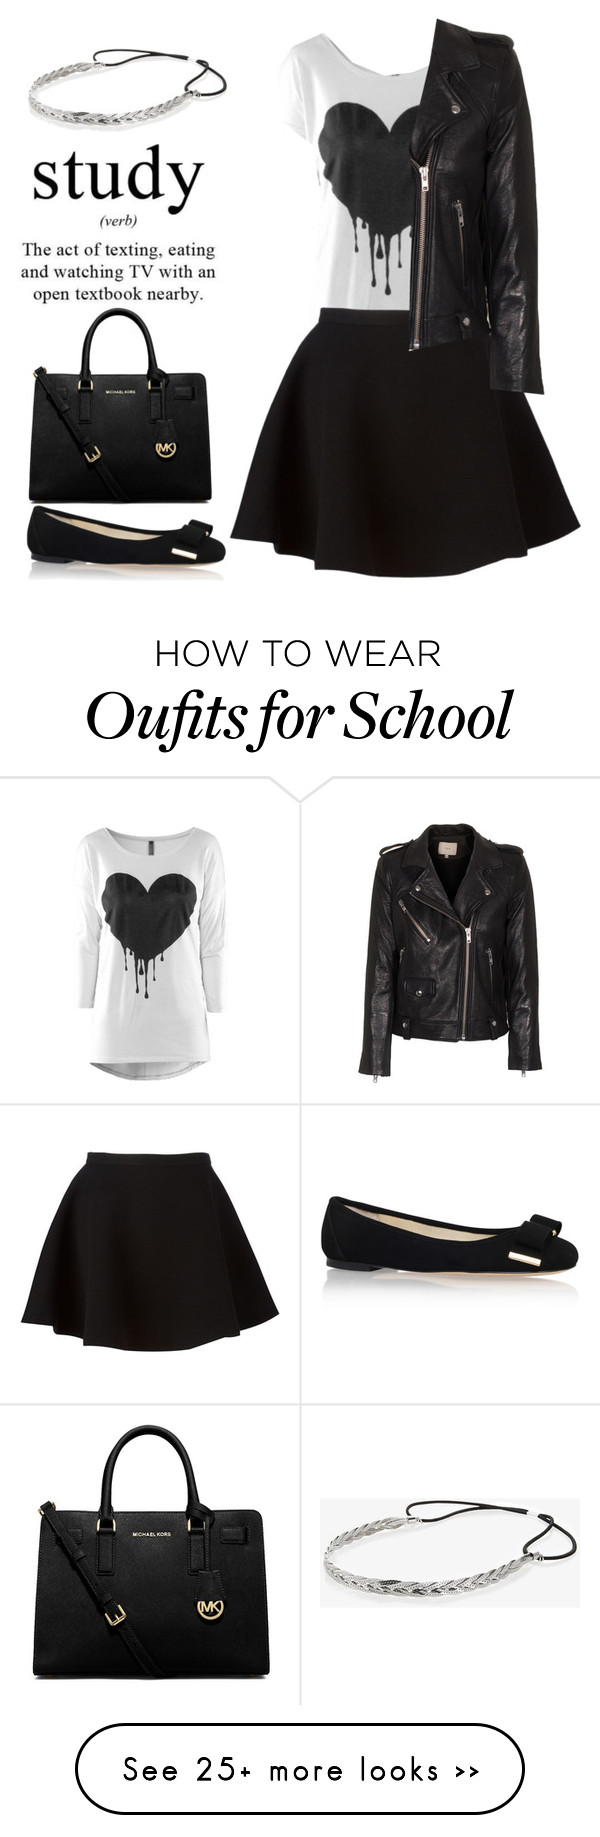 """""""My school style"""" by starspy on Polyvore featuring Neil Barrett, IRO, MICHAEL Michael Kors and Express"""